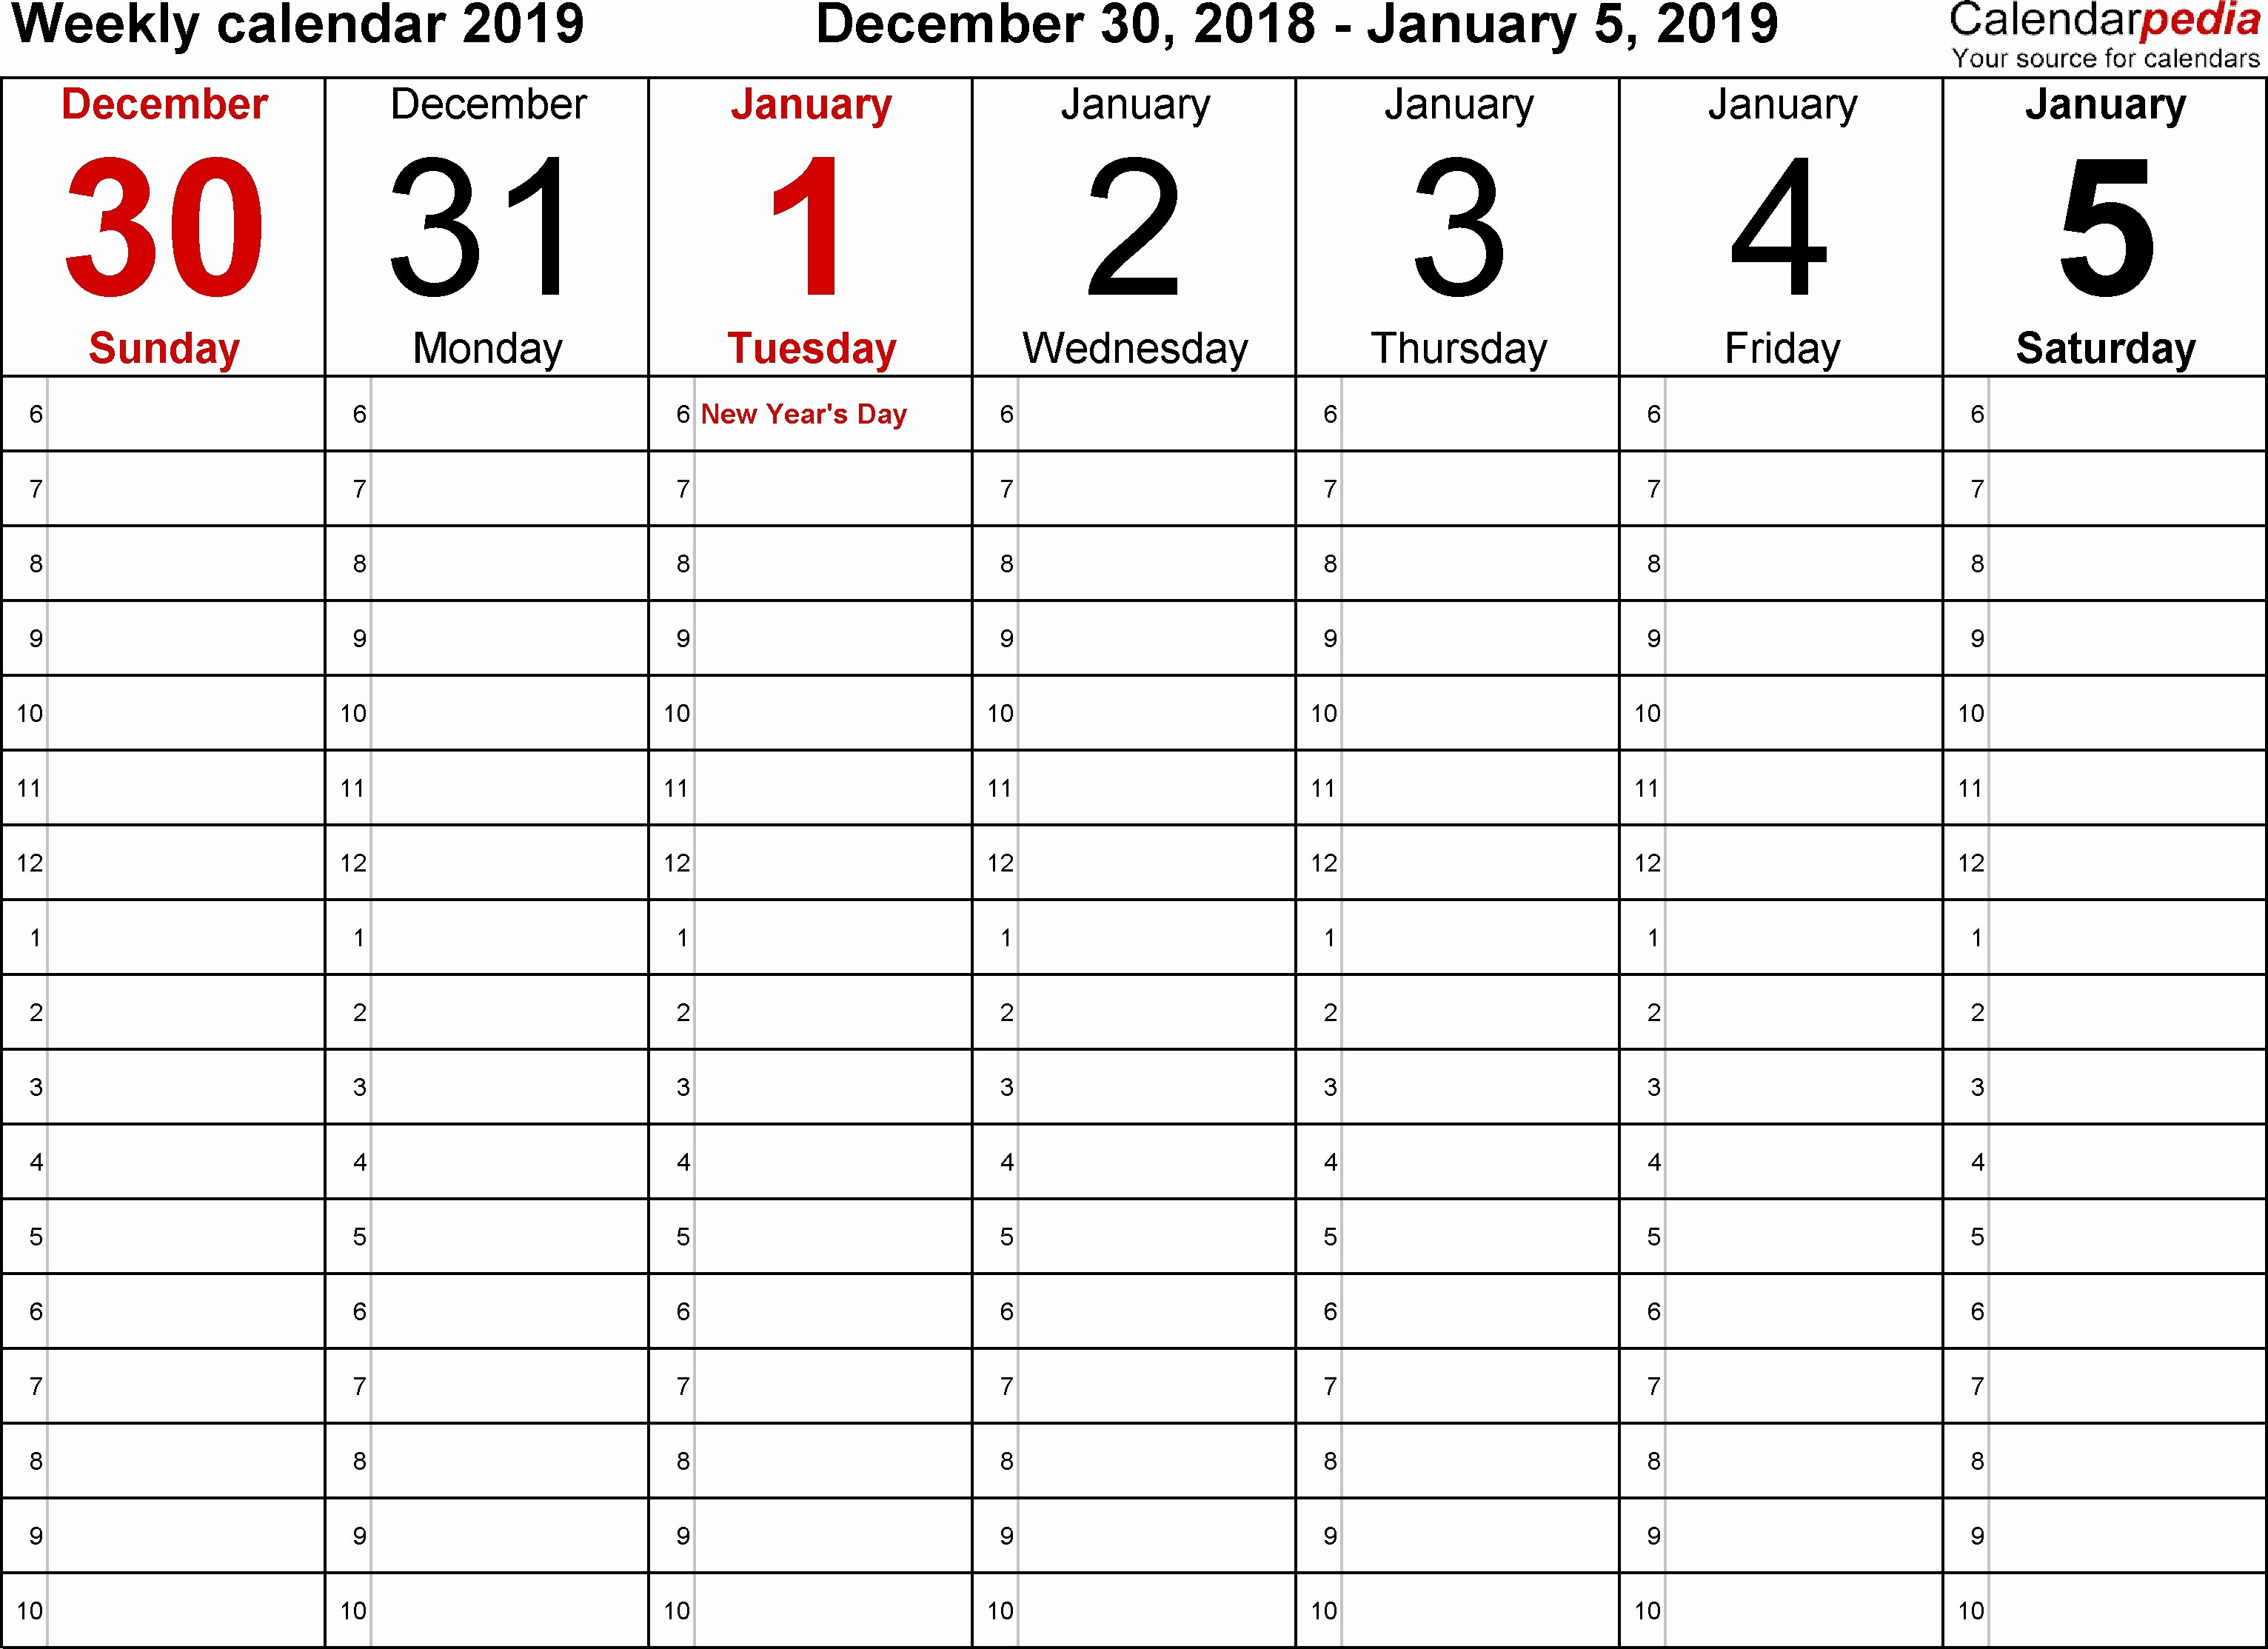 Printable Daily Planner 2019 Unique Weekly Calendar 2019 for Pdf 12 Free Printable Templates